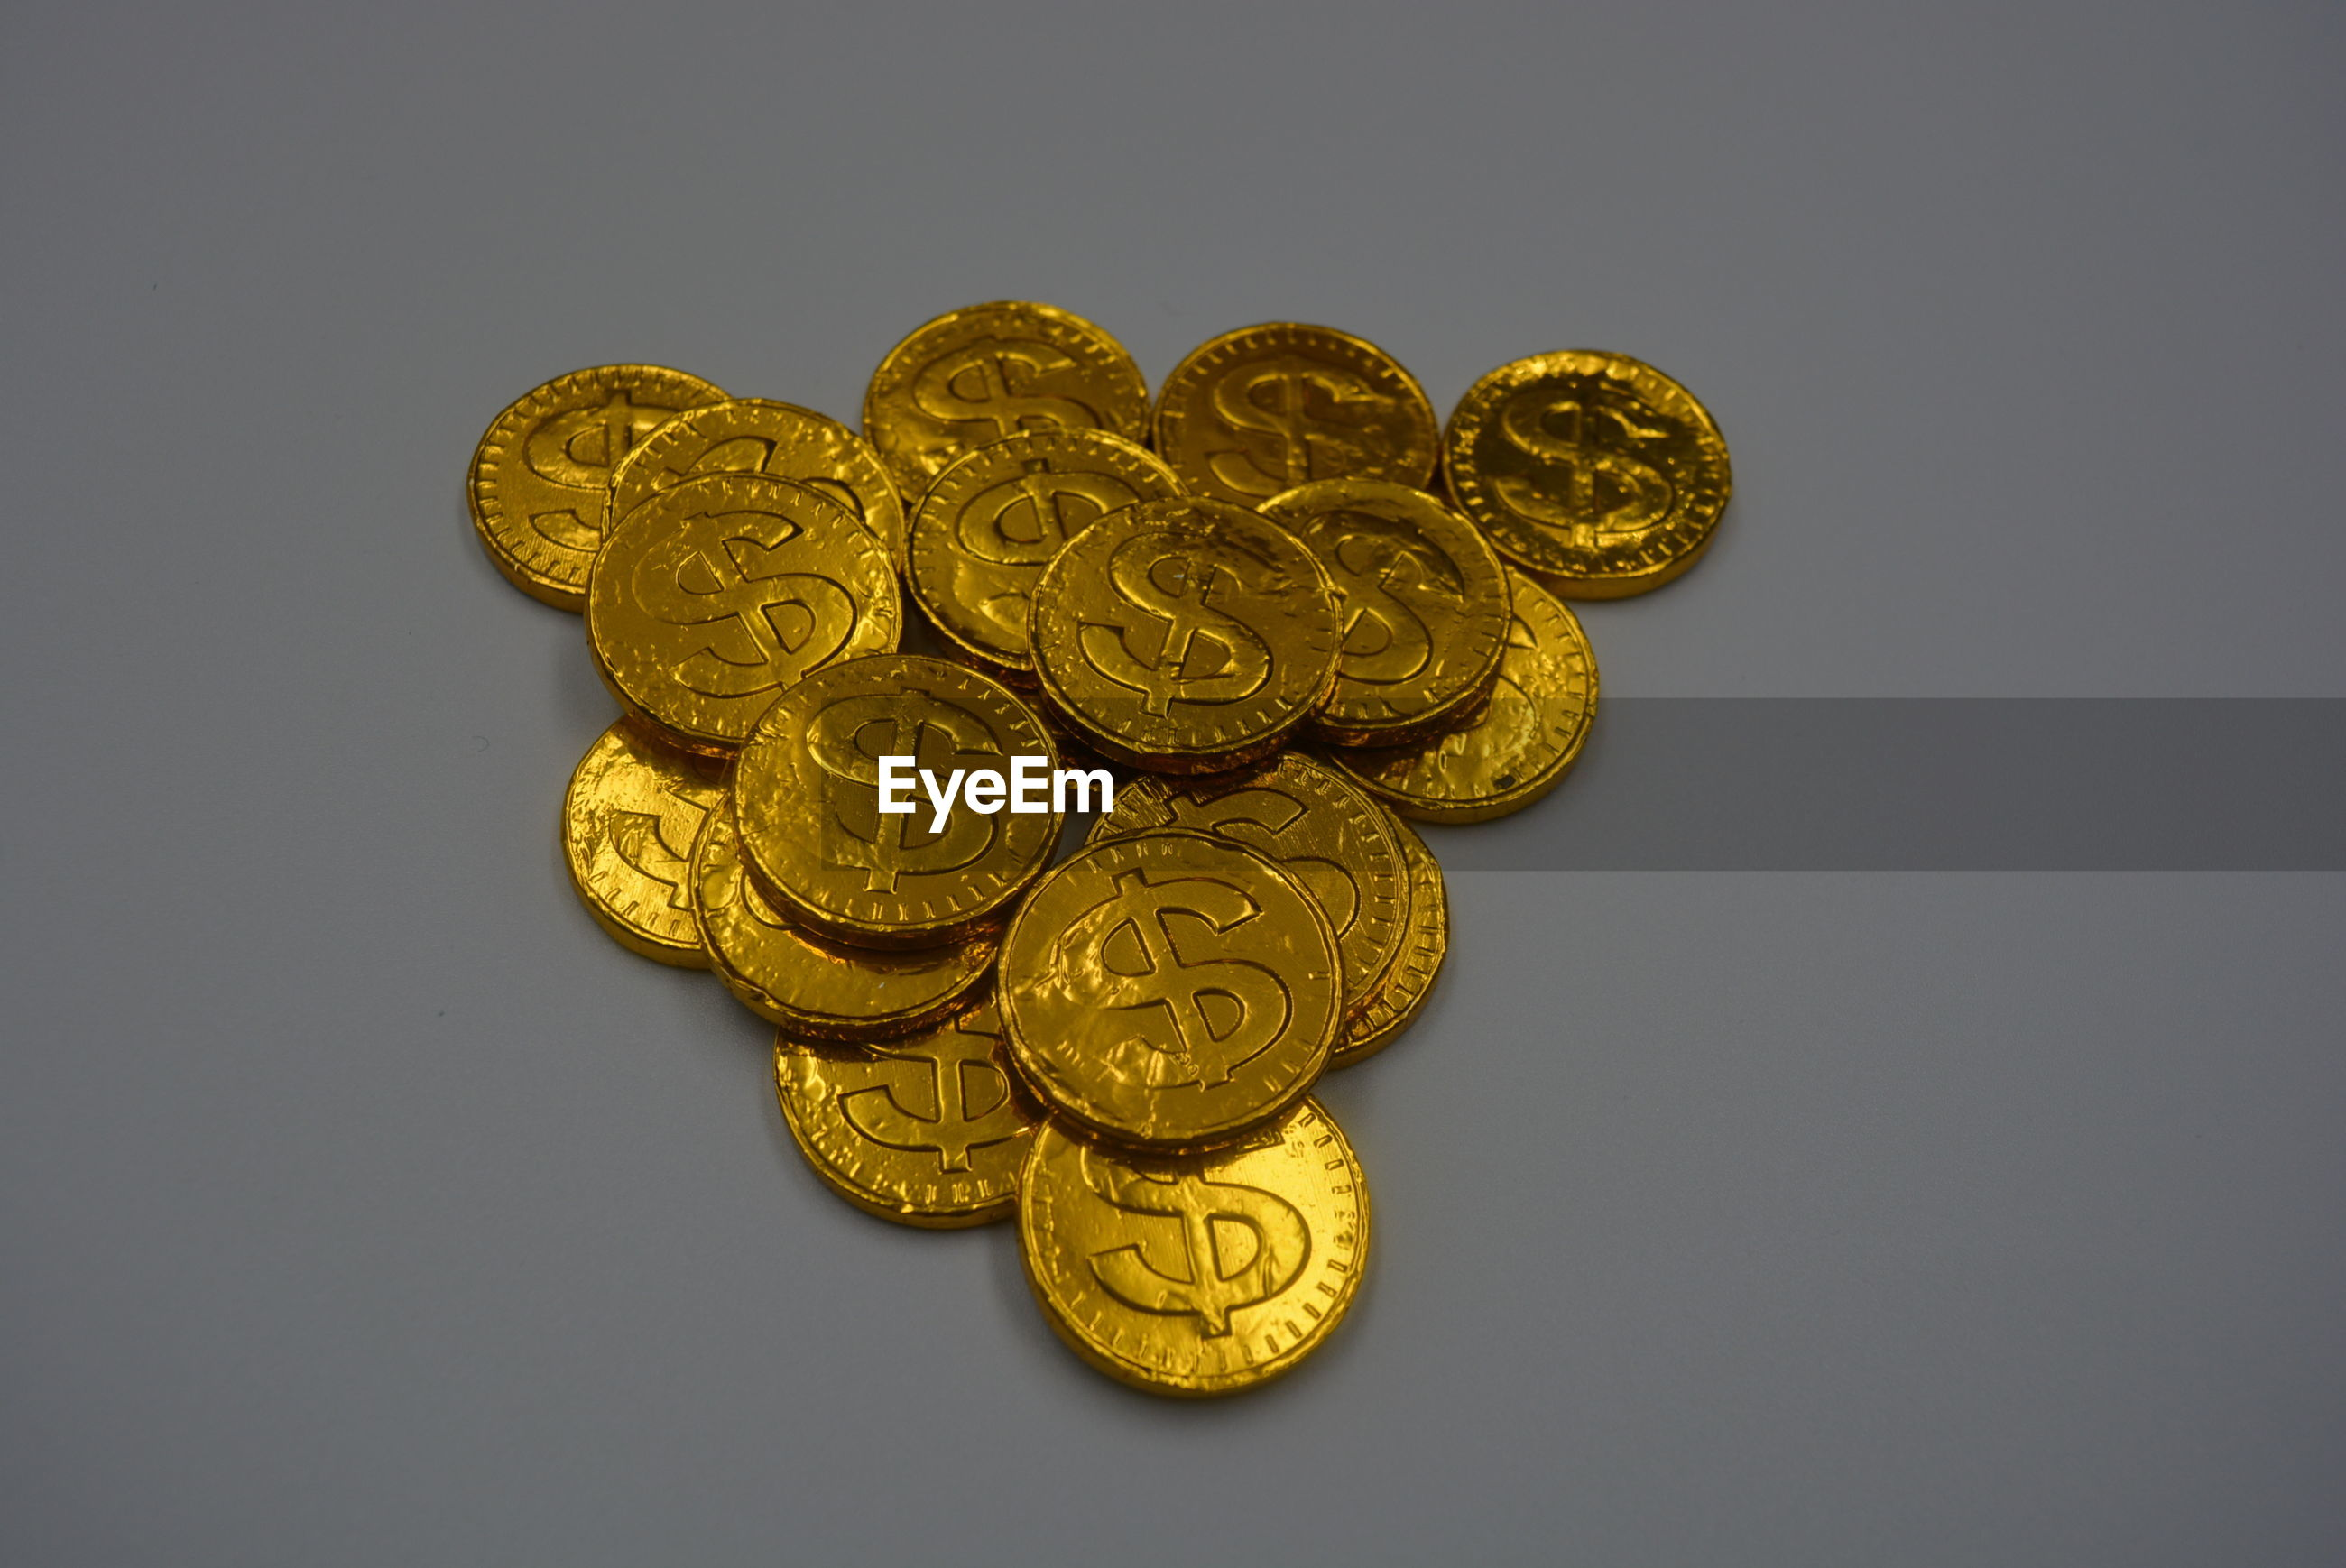 High angle view of coins on gray background